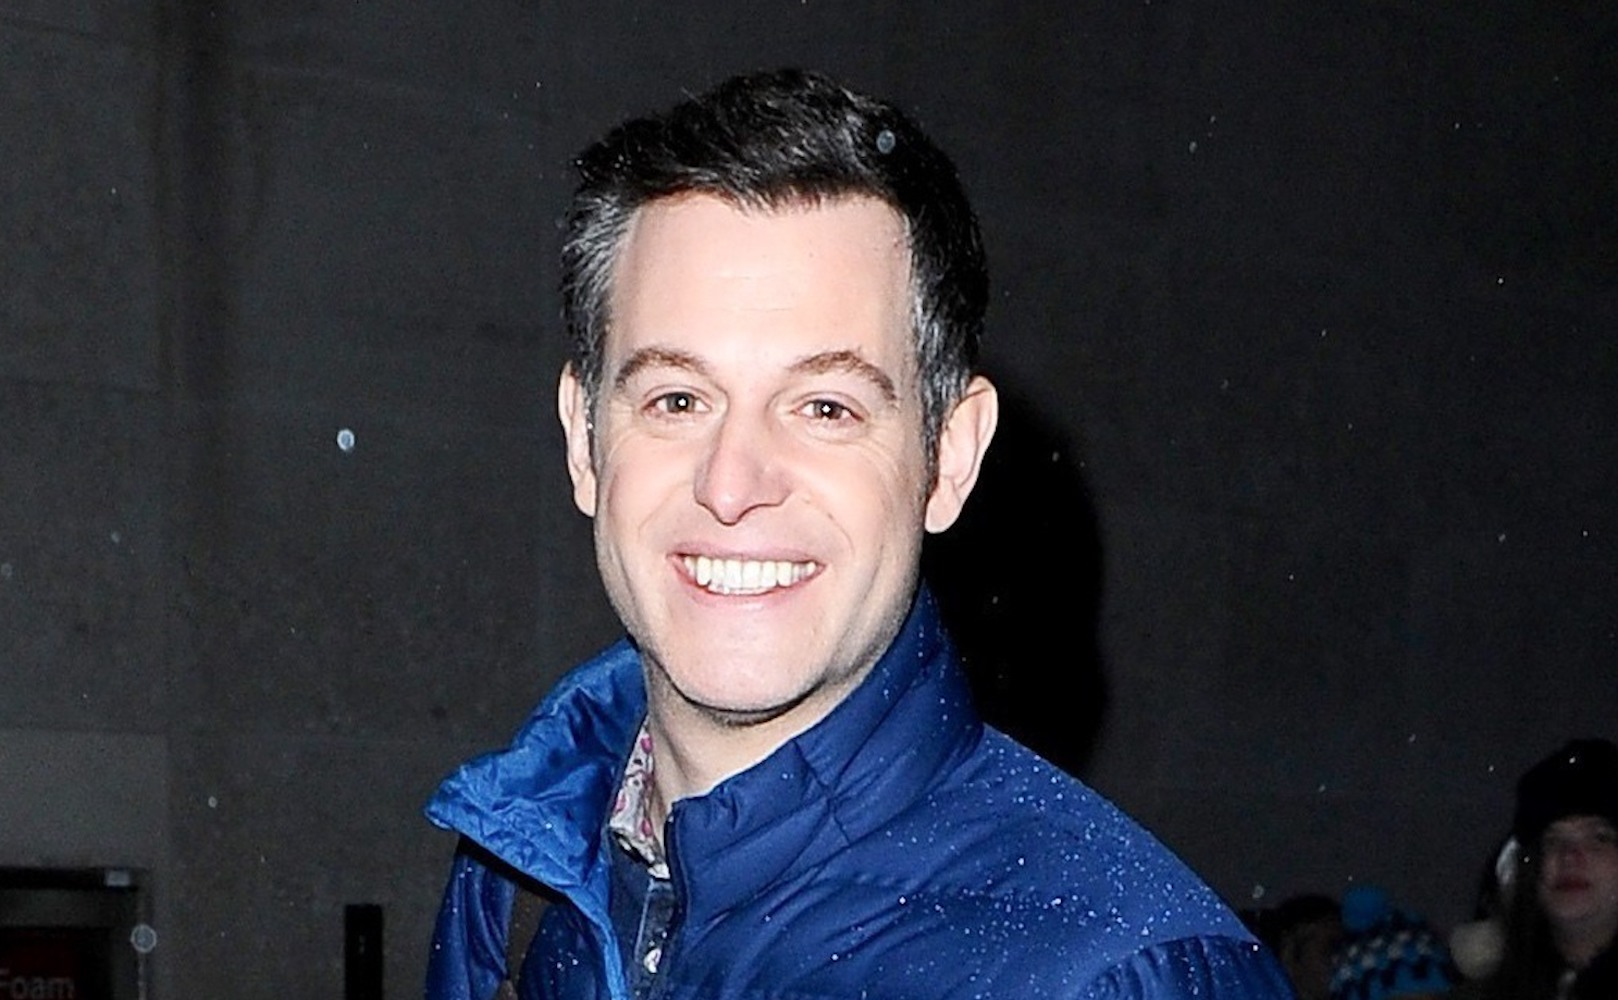 The One Show: Matt Baker will not be replaced as he leaves tonight